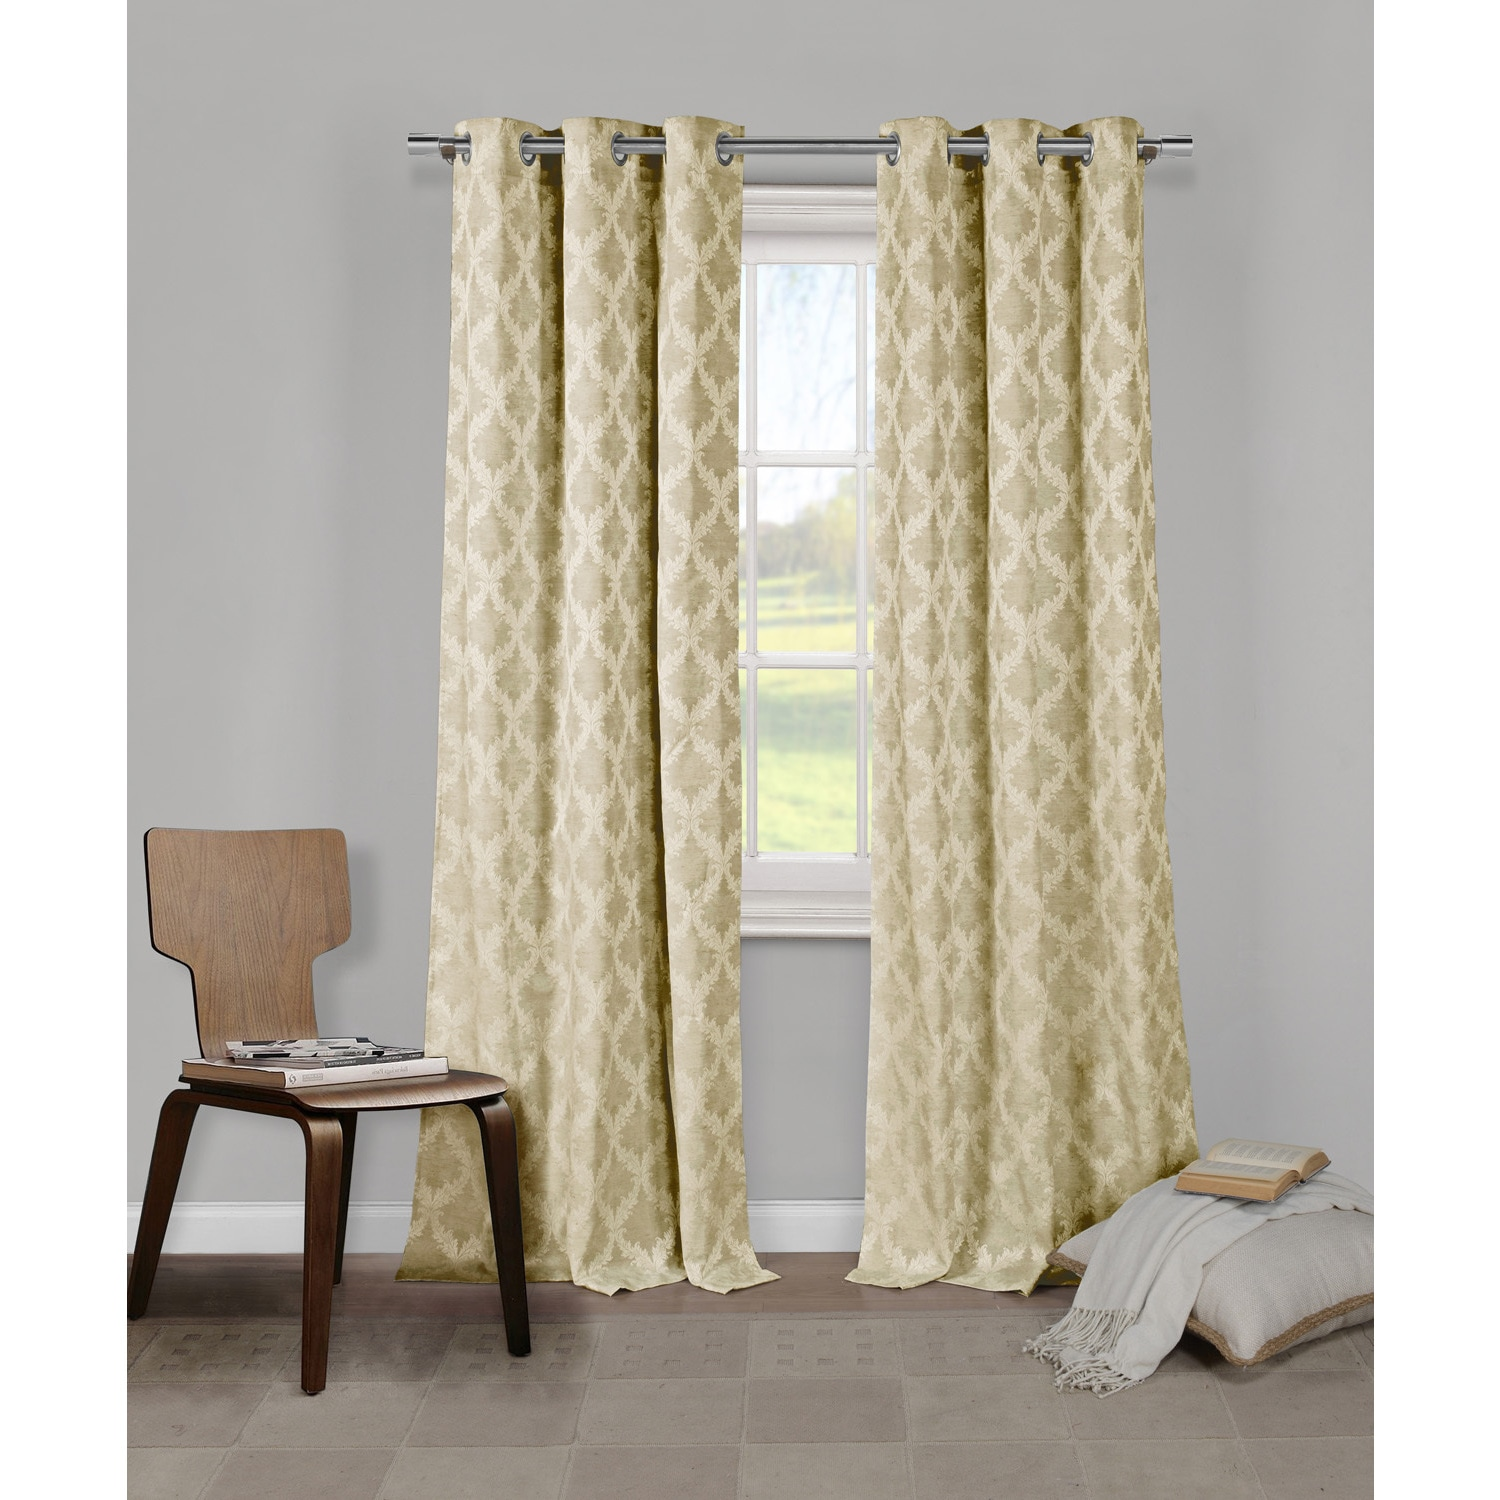 Duck River Damasco Grommet Curtain Panel Pair (Taupe), Br...